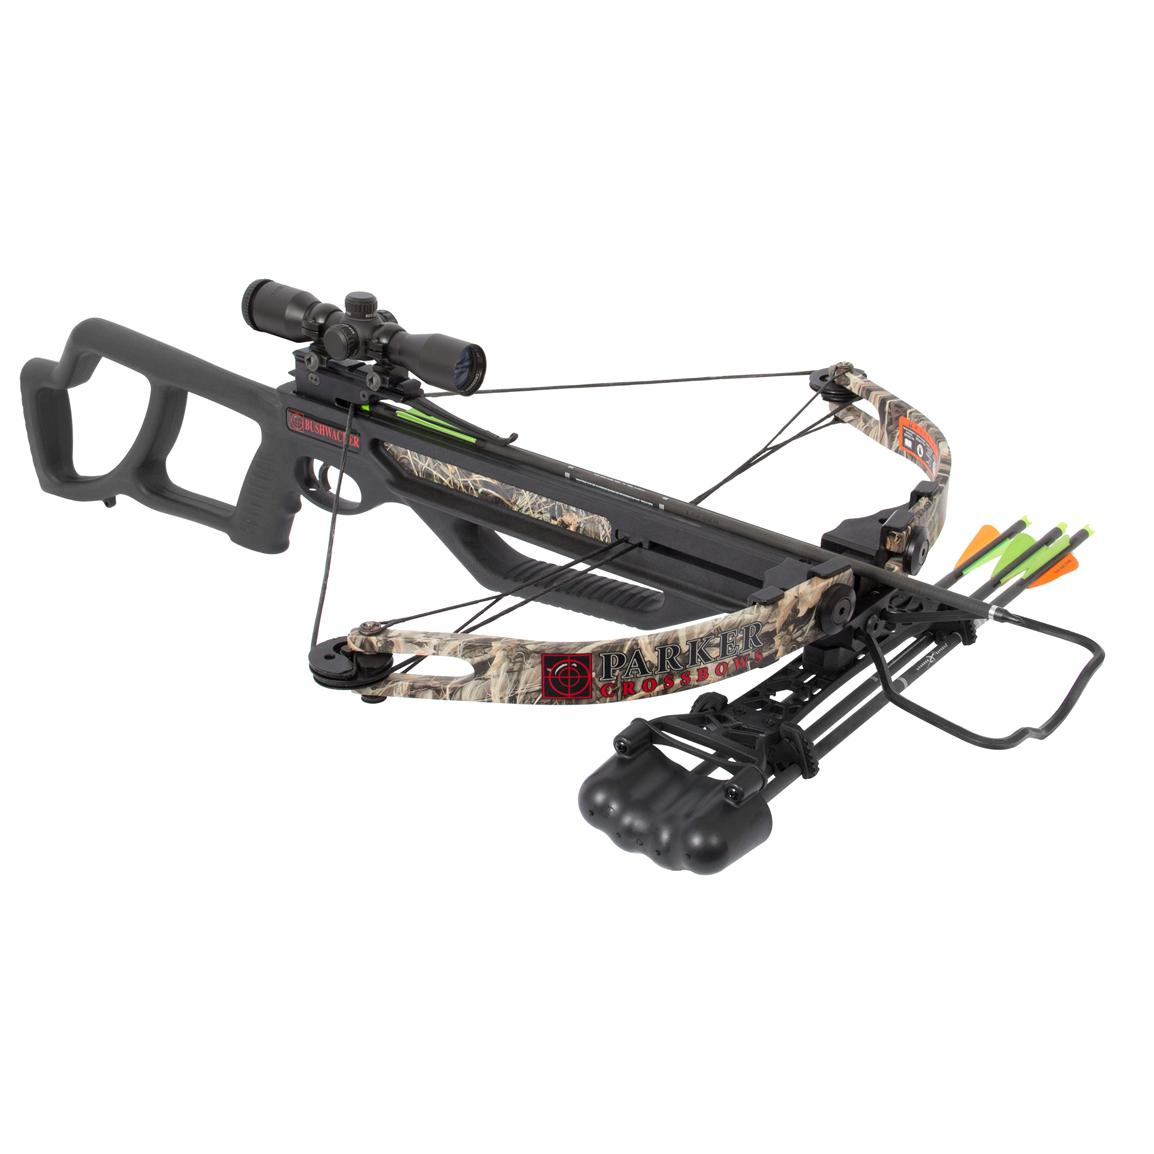 Parker® BushWacker 150-lb. Crossbow with 1X Illuminated Scope Package